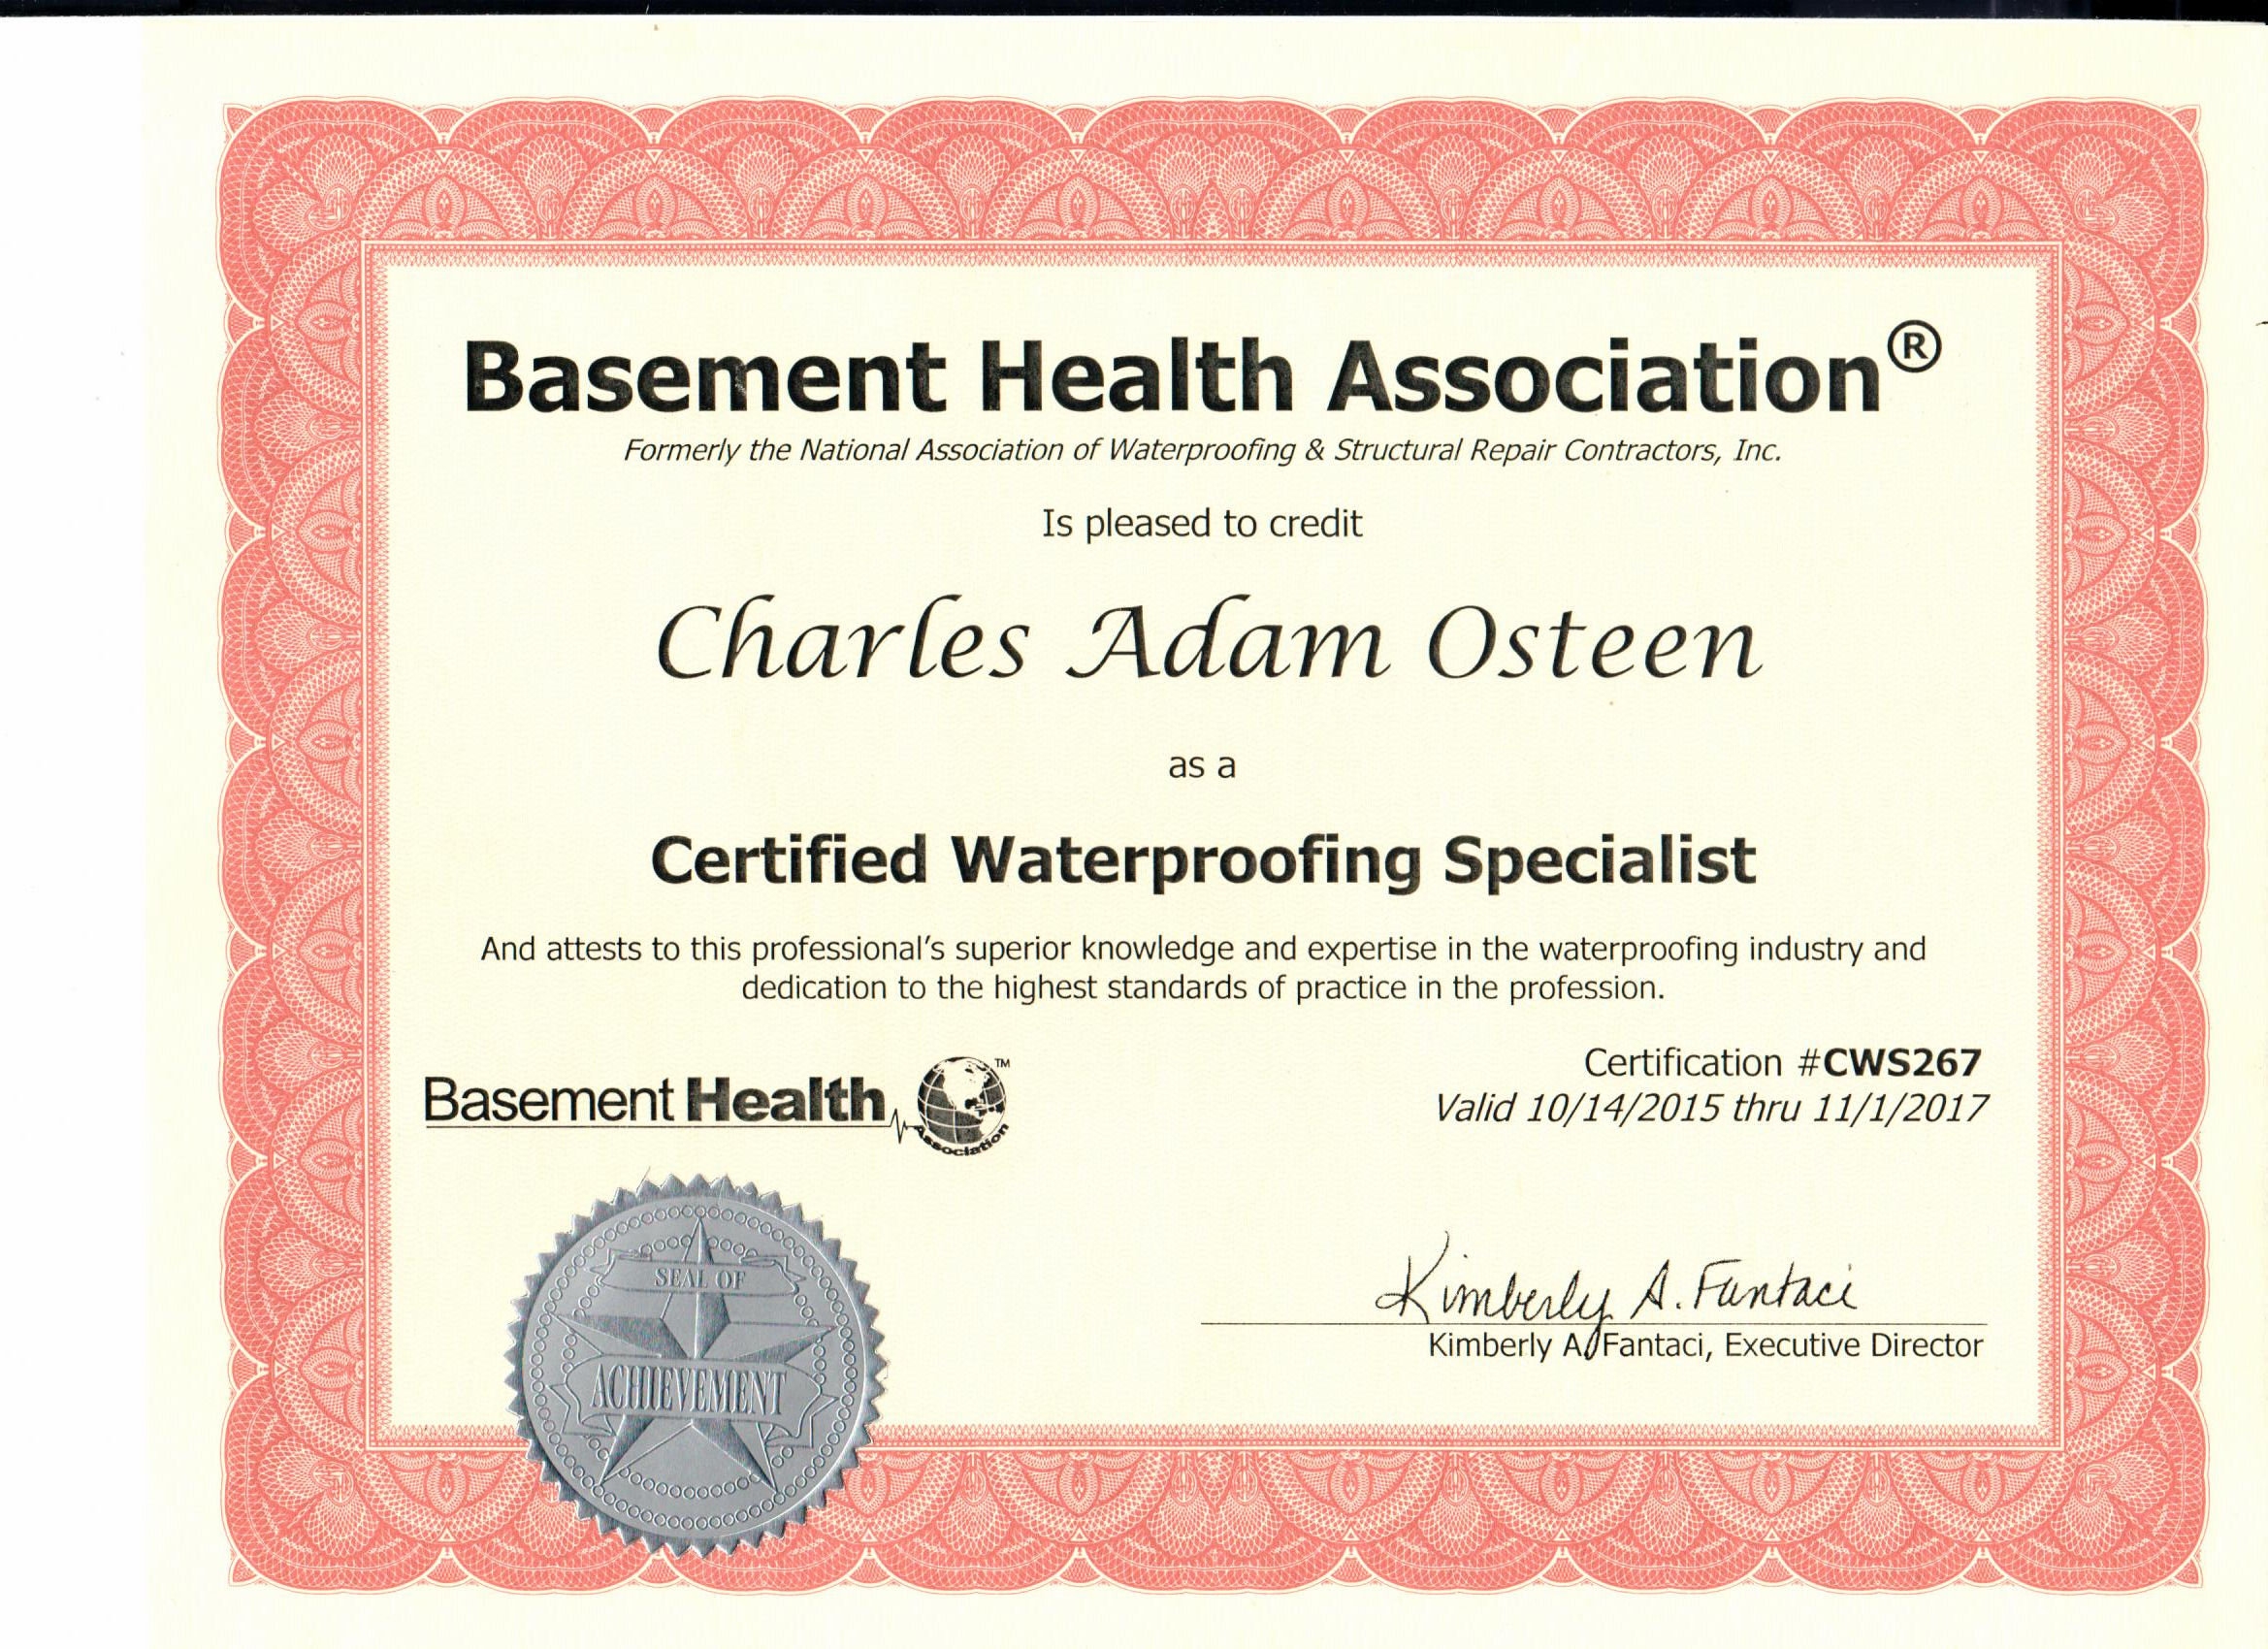 Everdry Basement Waterproofing Atlanta | Basement Health Association Certified Award Charles Adam Osteen